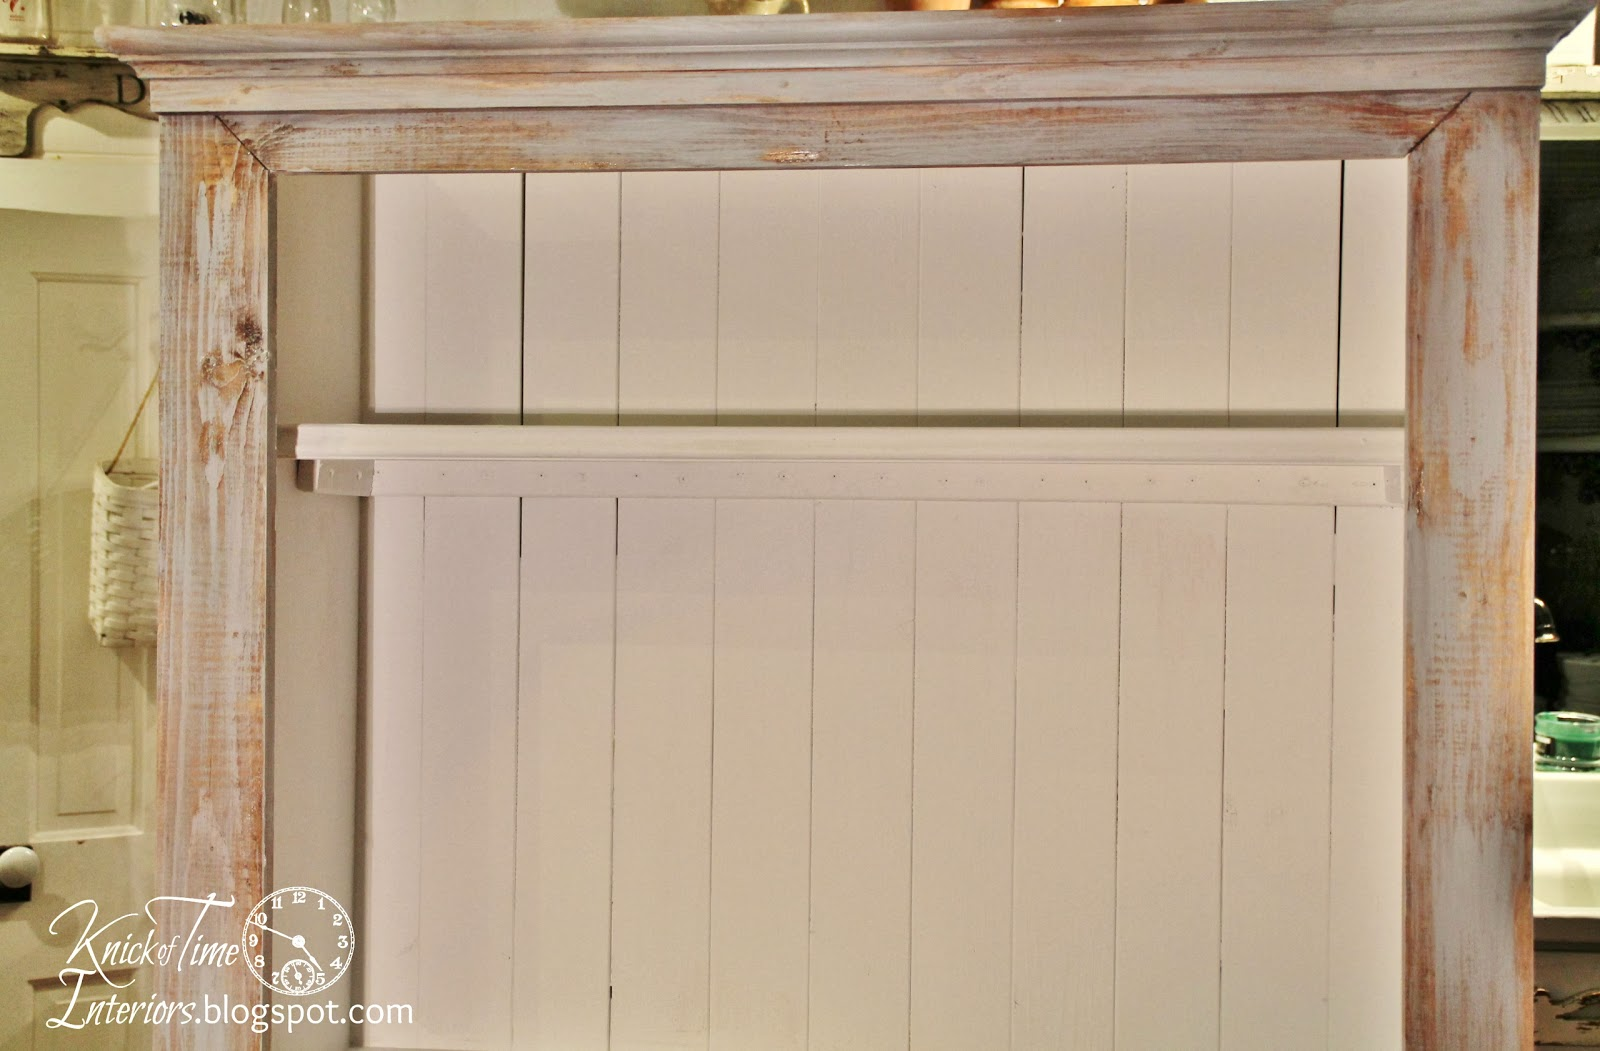 How to Build a Cupboard Cabinet via Knick of Time